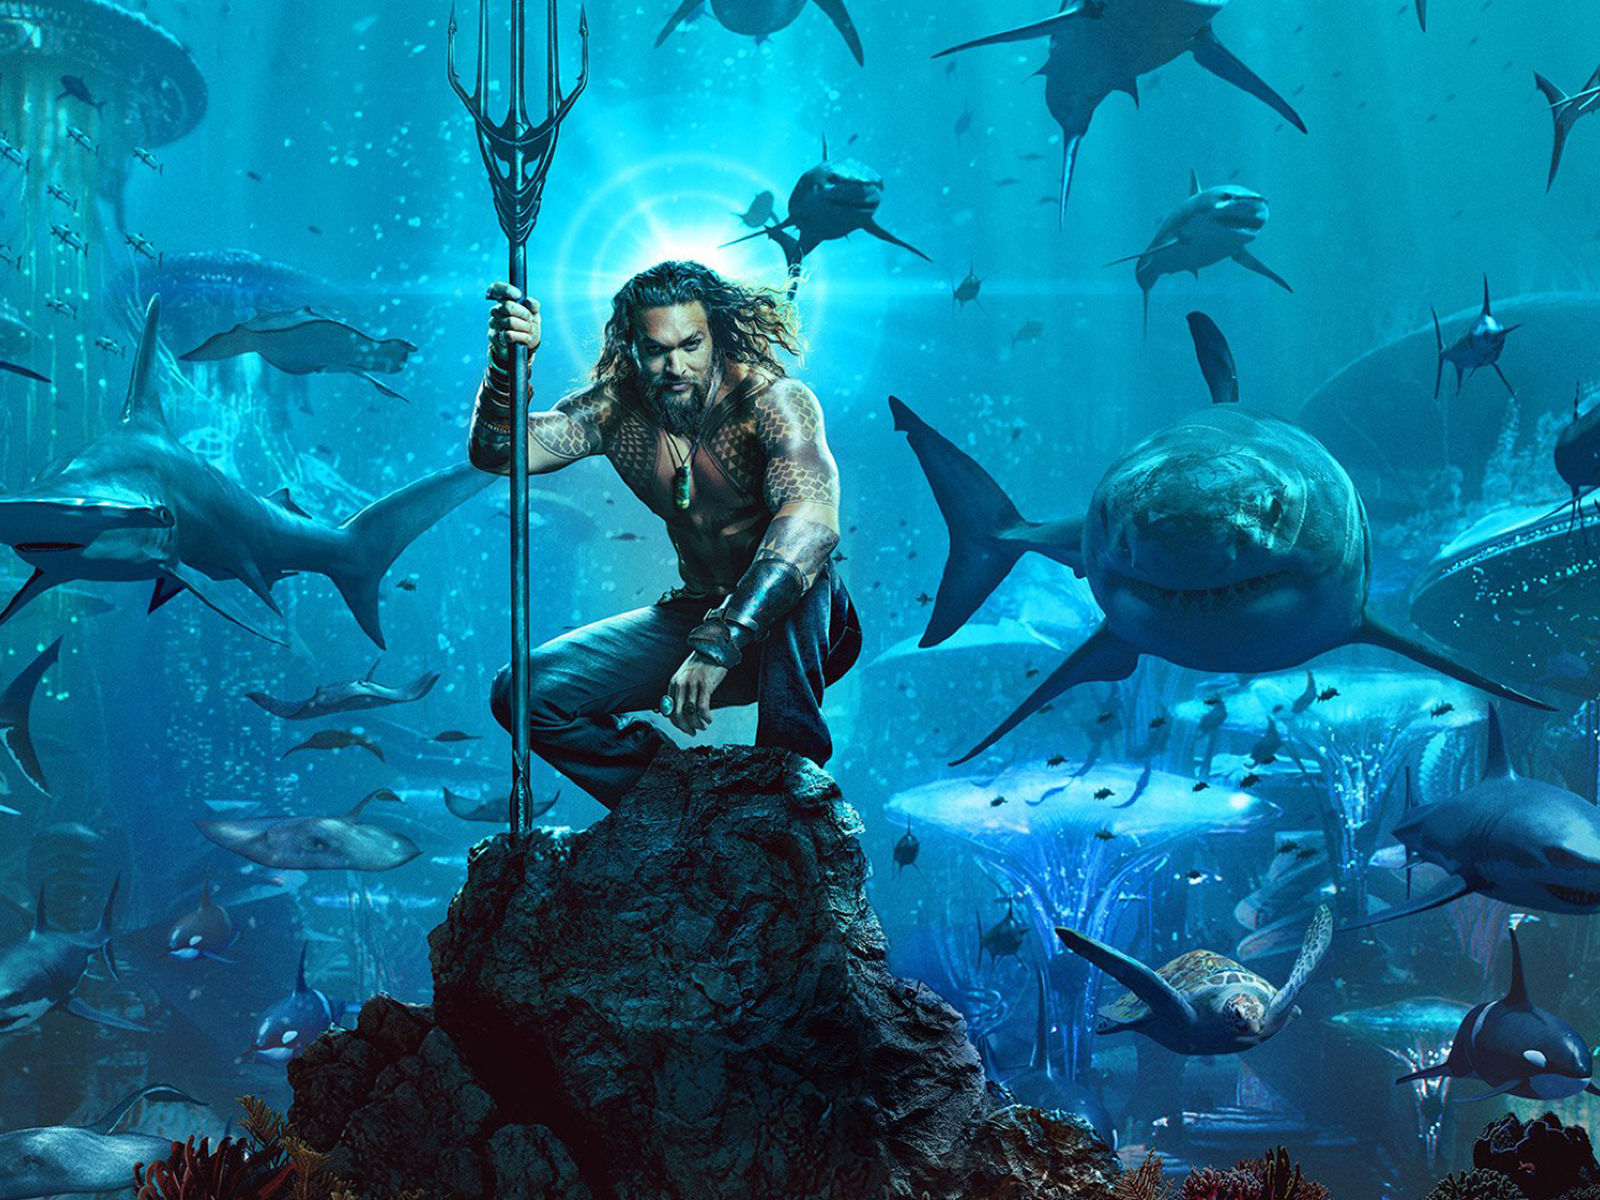 2018 Movie Posters: Aquaman 2018 Movie Poster, Full HD Wallpaper